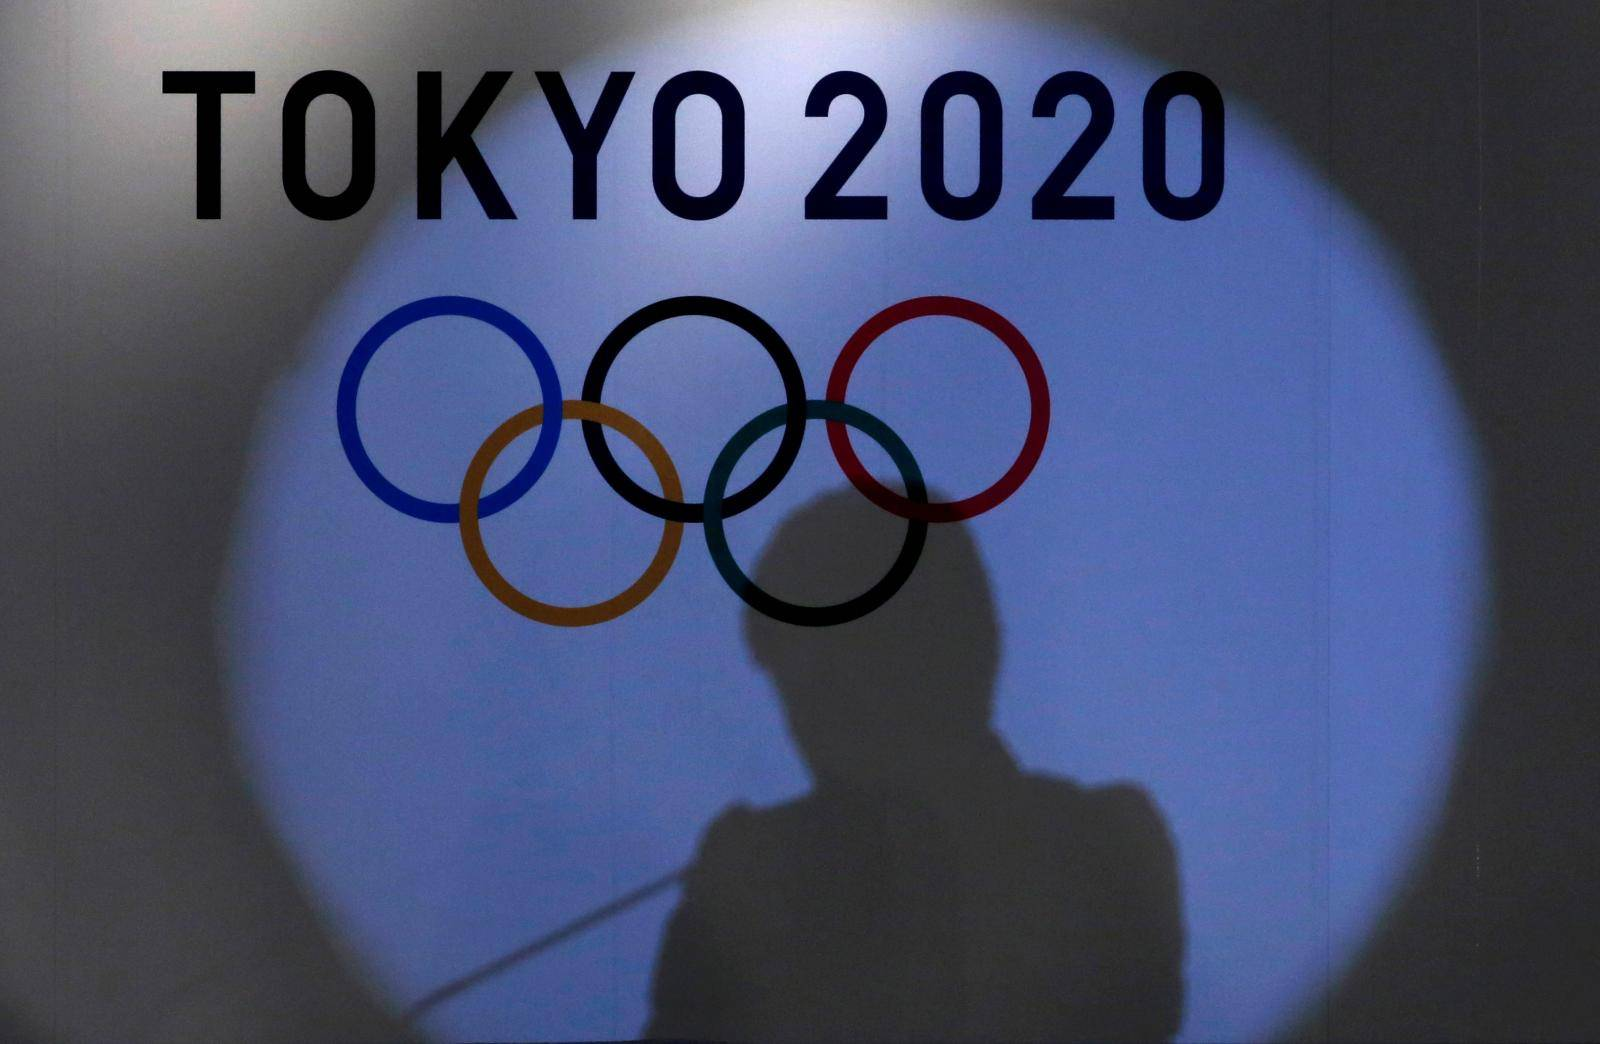 FILE PHOTO: Shadow of of Tokyo governor Yuriko Koike is seen on the logo of Tokyo 2020 Olympic games during the Olympic and Paralympic flag-raising ceremony at Tokyo Metropolitan Government Building in Tokyo